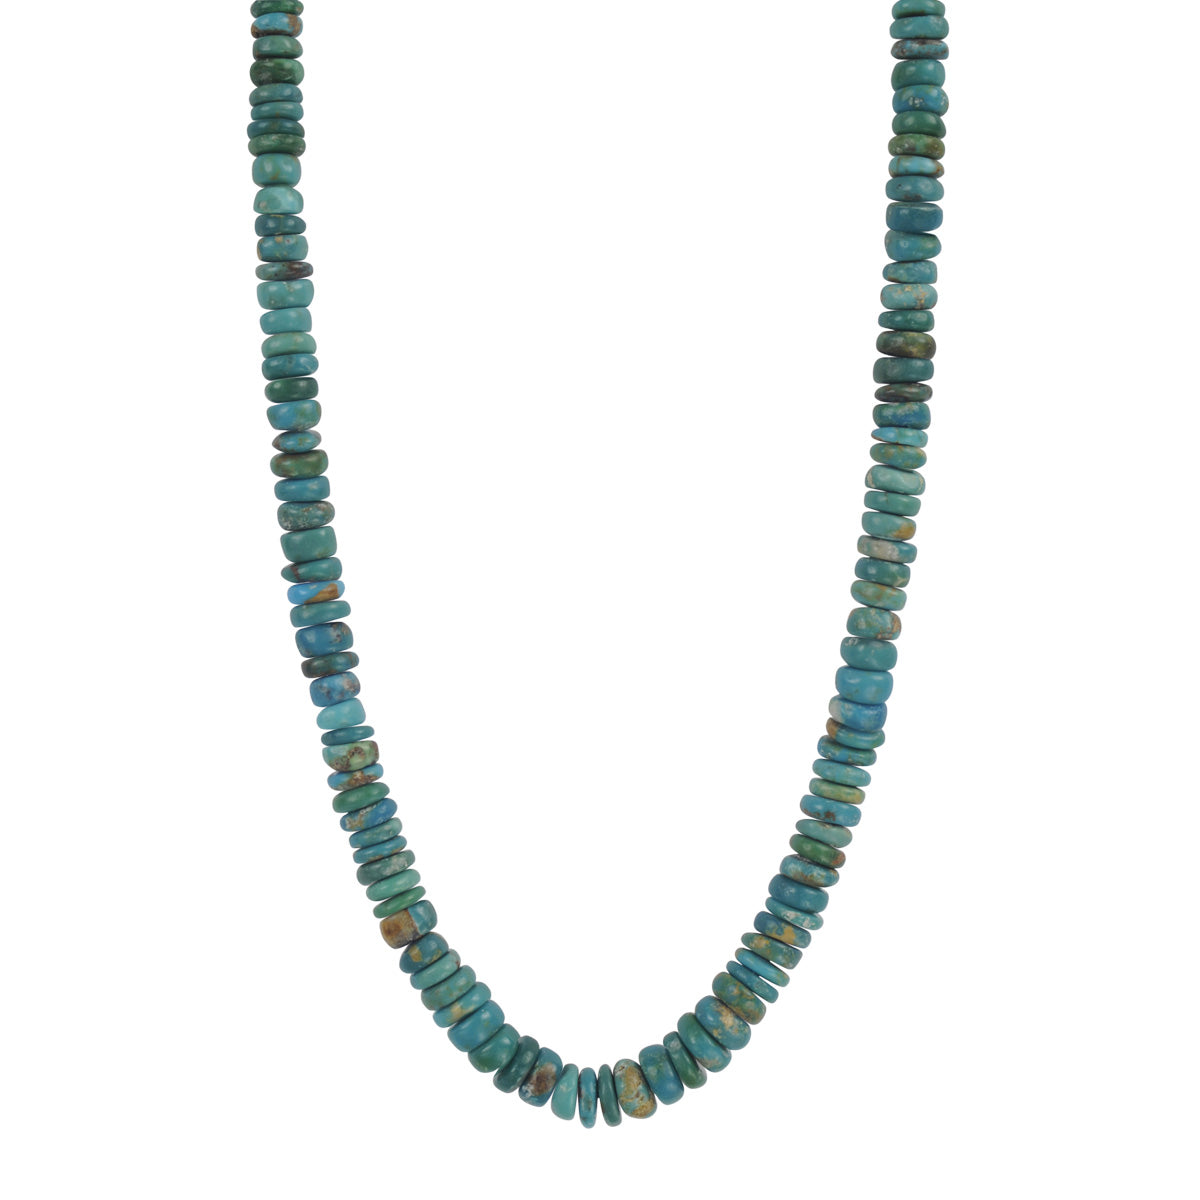 18K Gold Persian Turquoise Rondelle Necklace on Cord